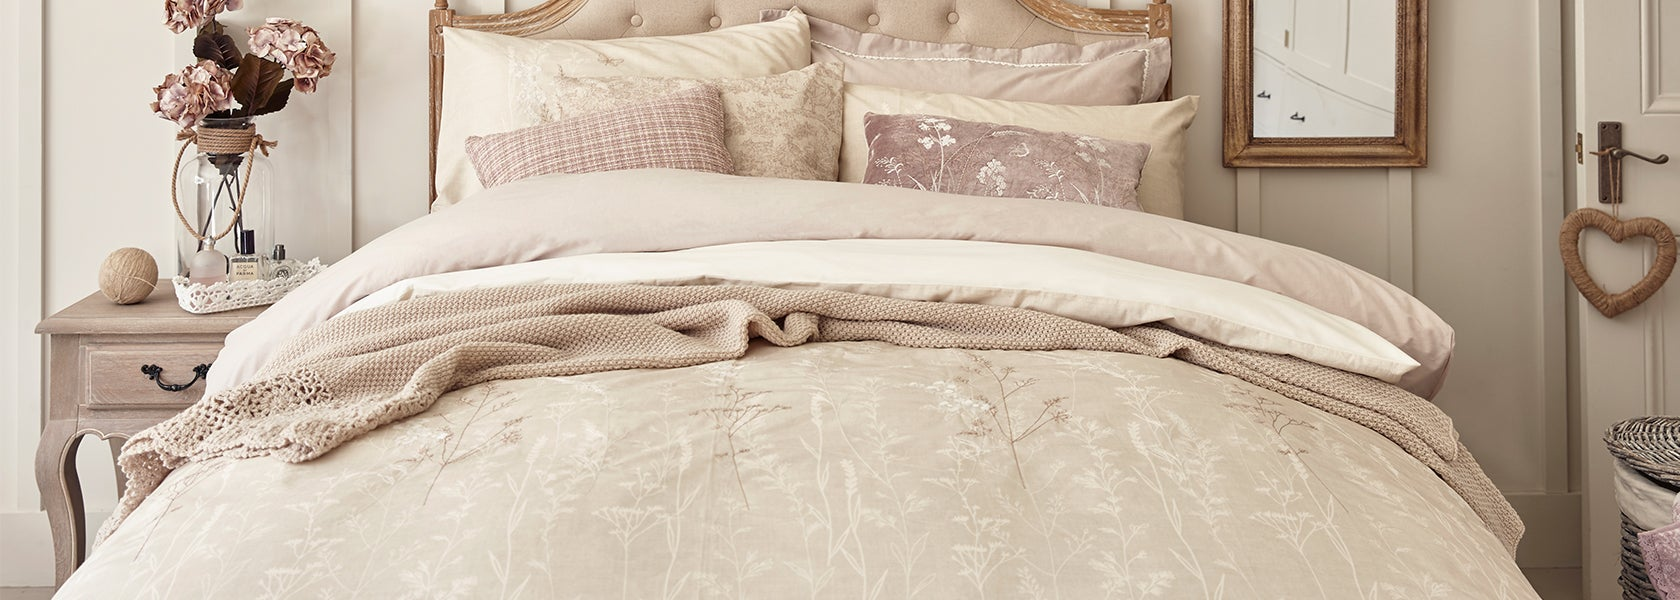 Incroyable Bed Linen Buying Guide